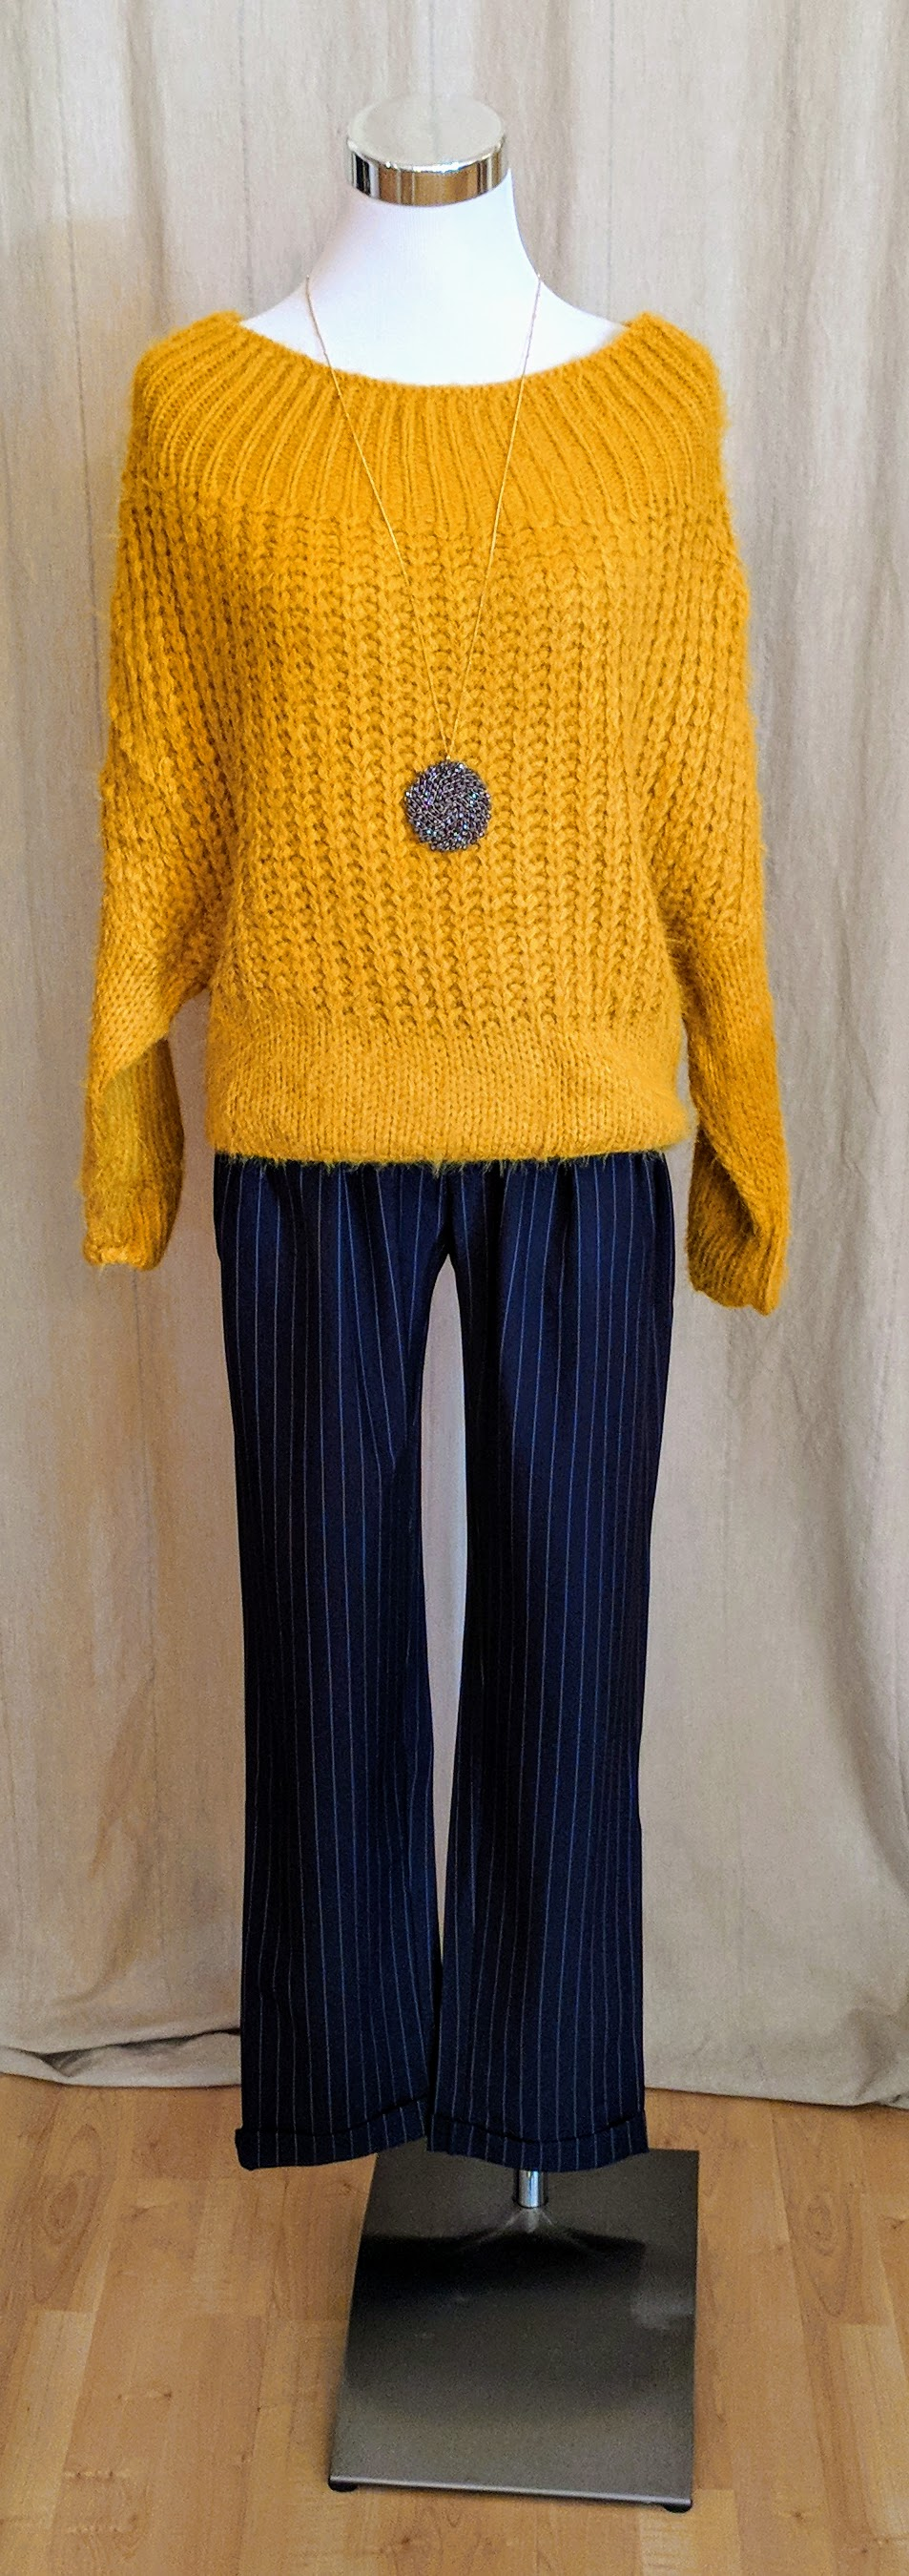 Mustard boat neck long sleeve knit sweater paired with navy high waist pleated trousers.